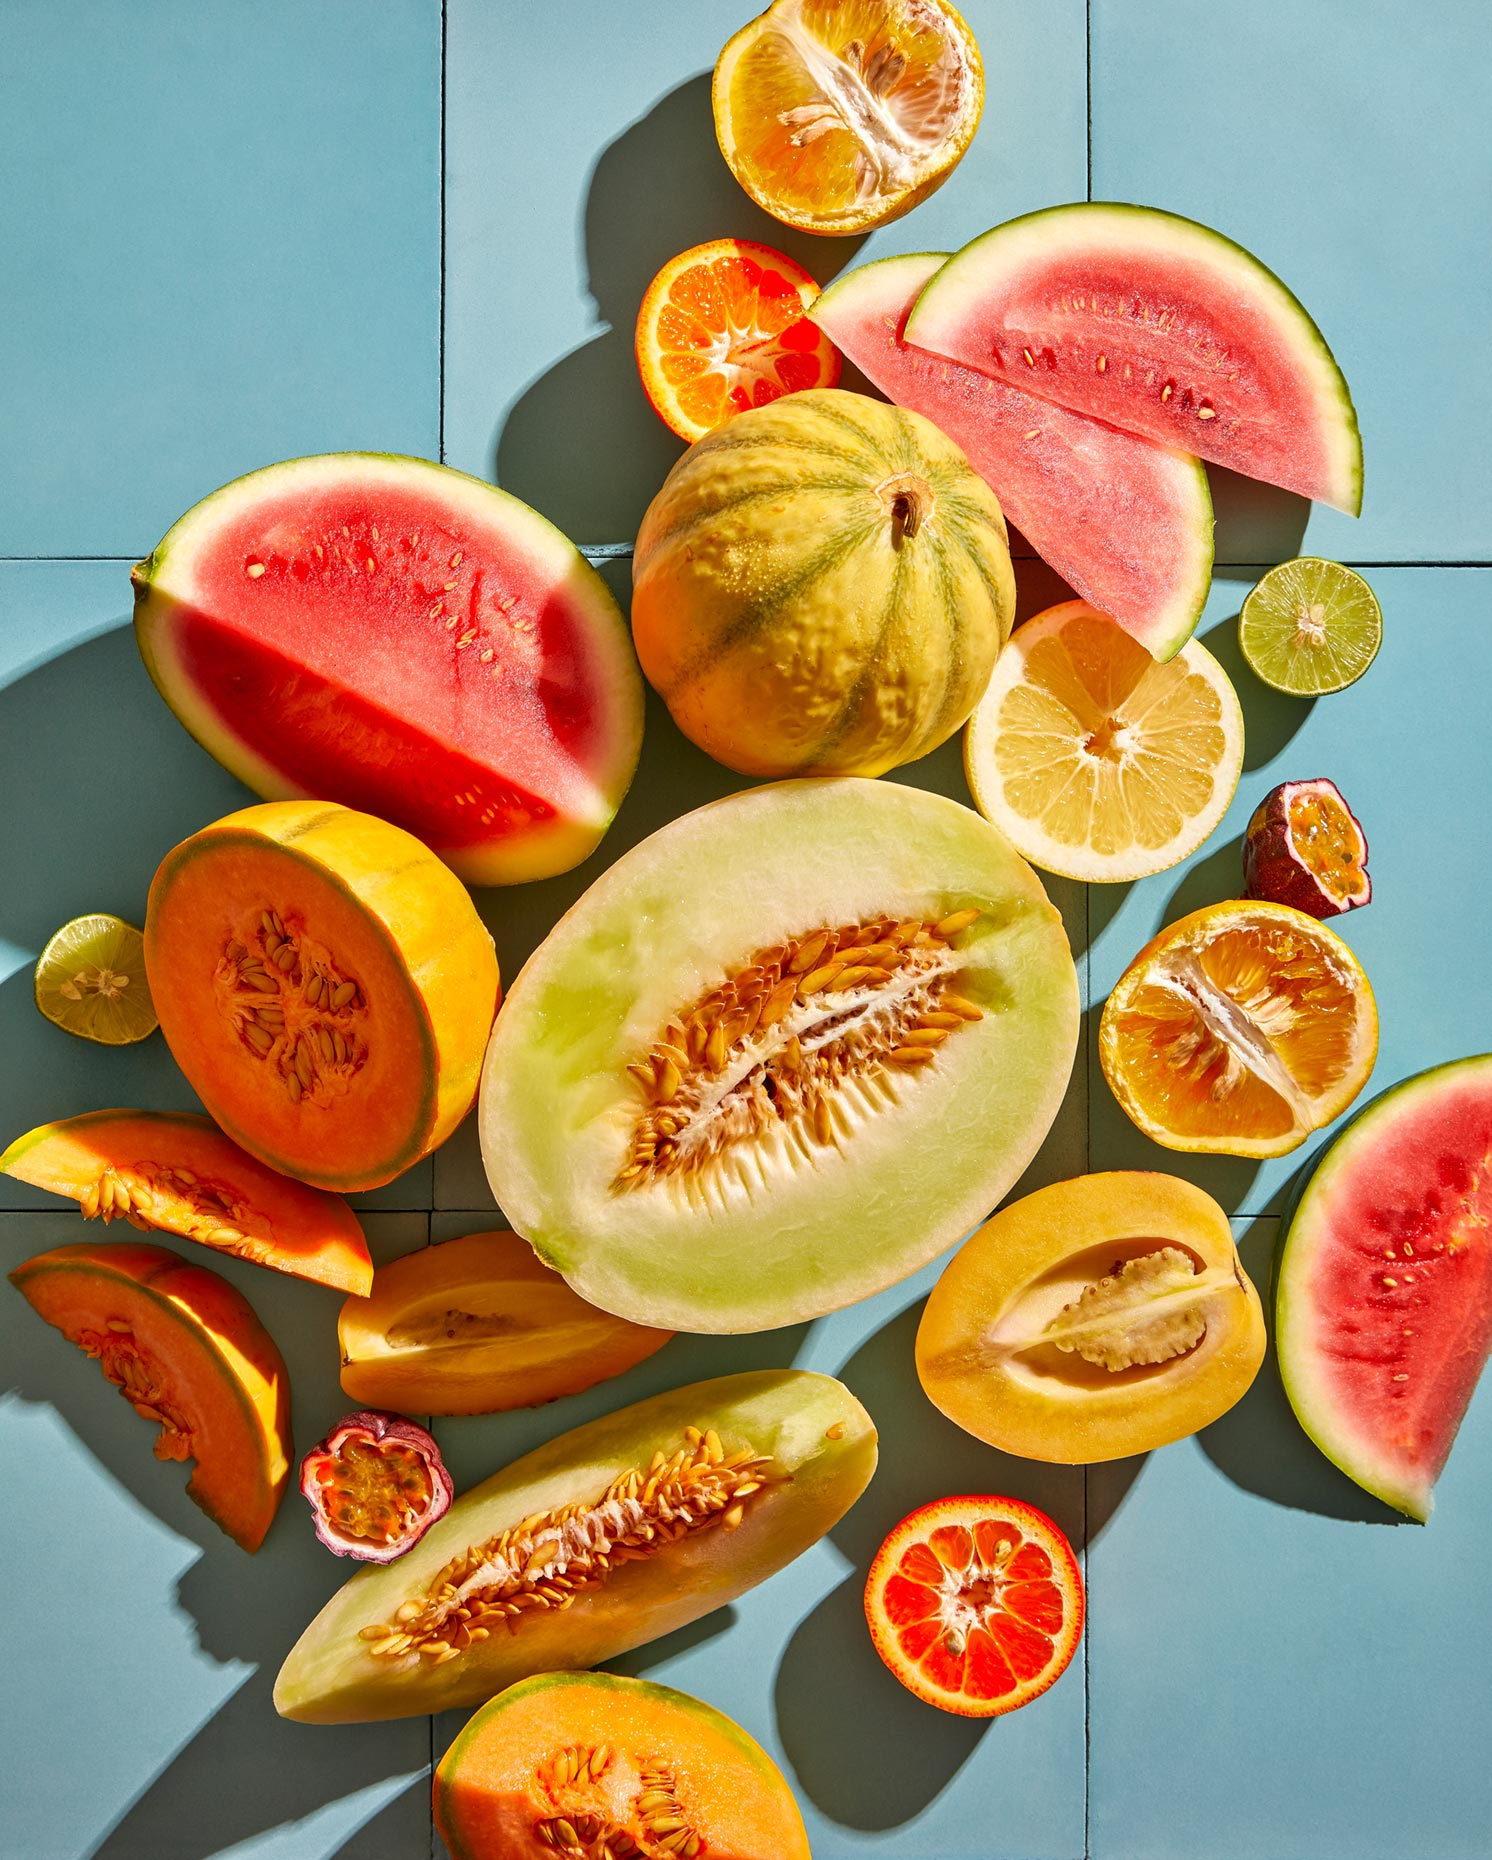 Melons and fruit in bright colors by Teri Lyn Fisher